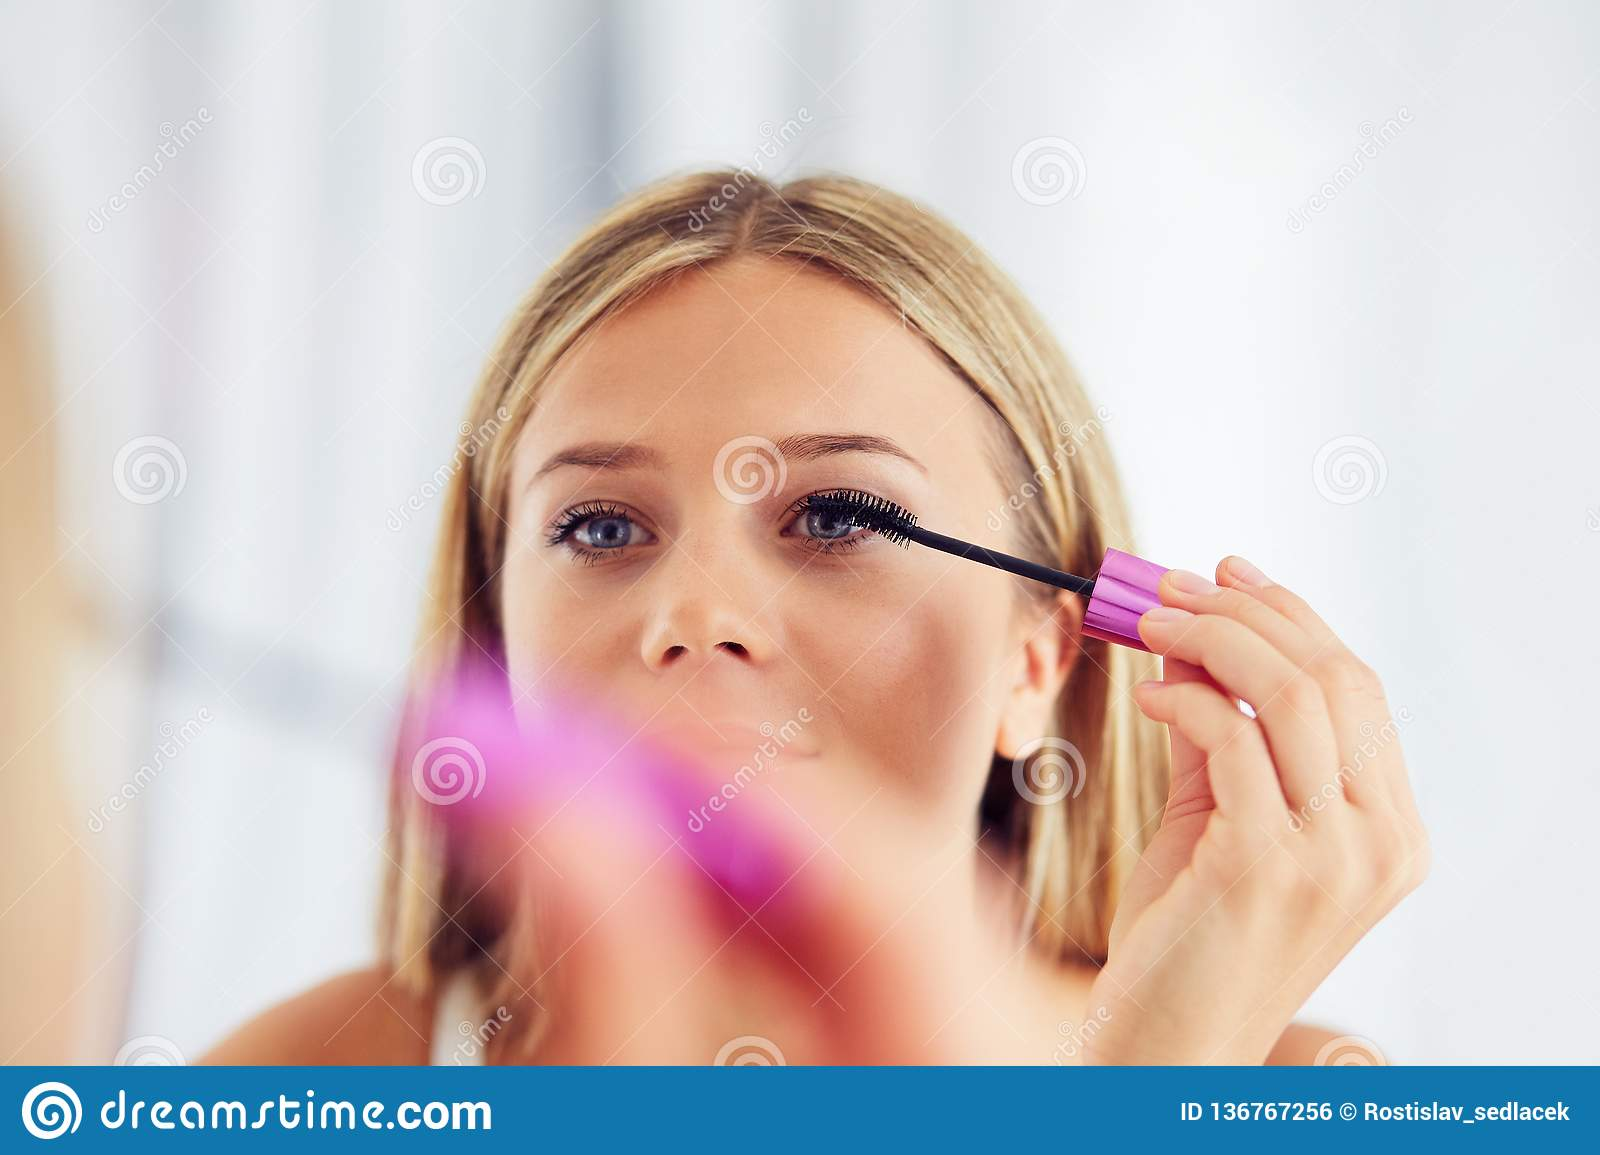 Woman applying makeup and painting eyelashes with mascara